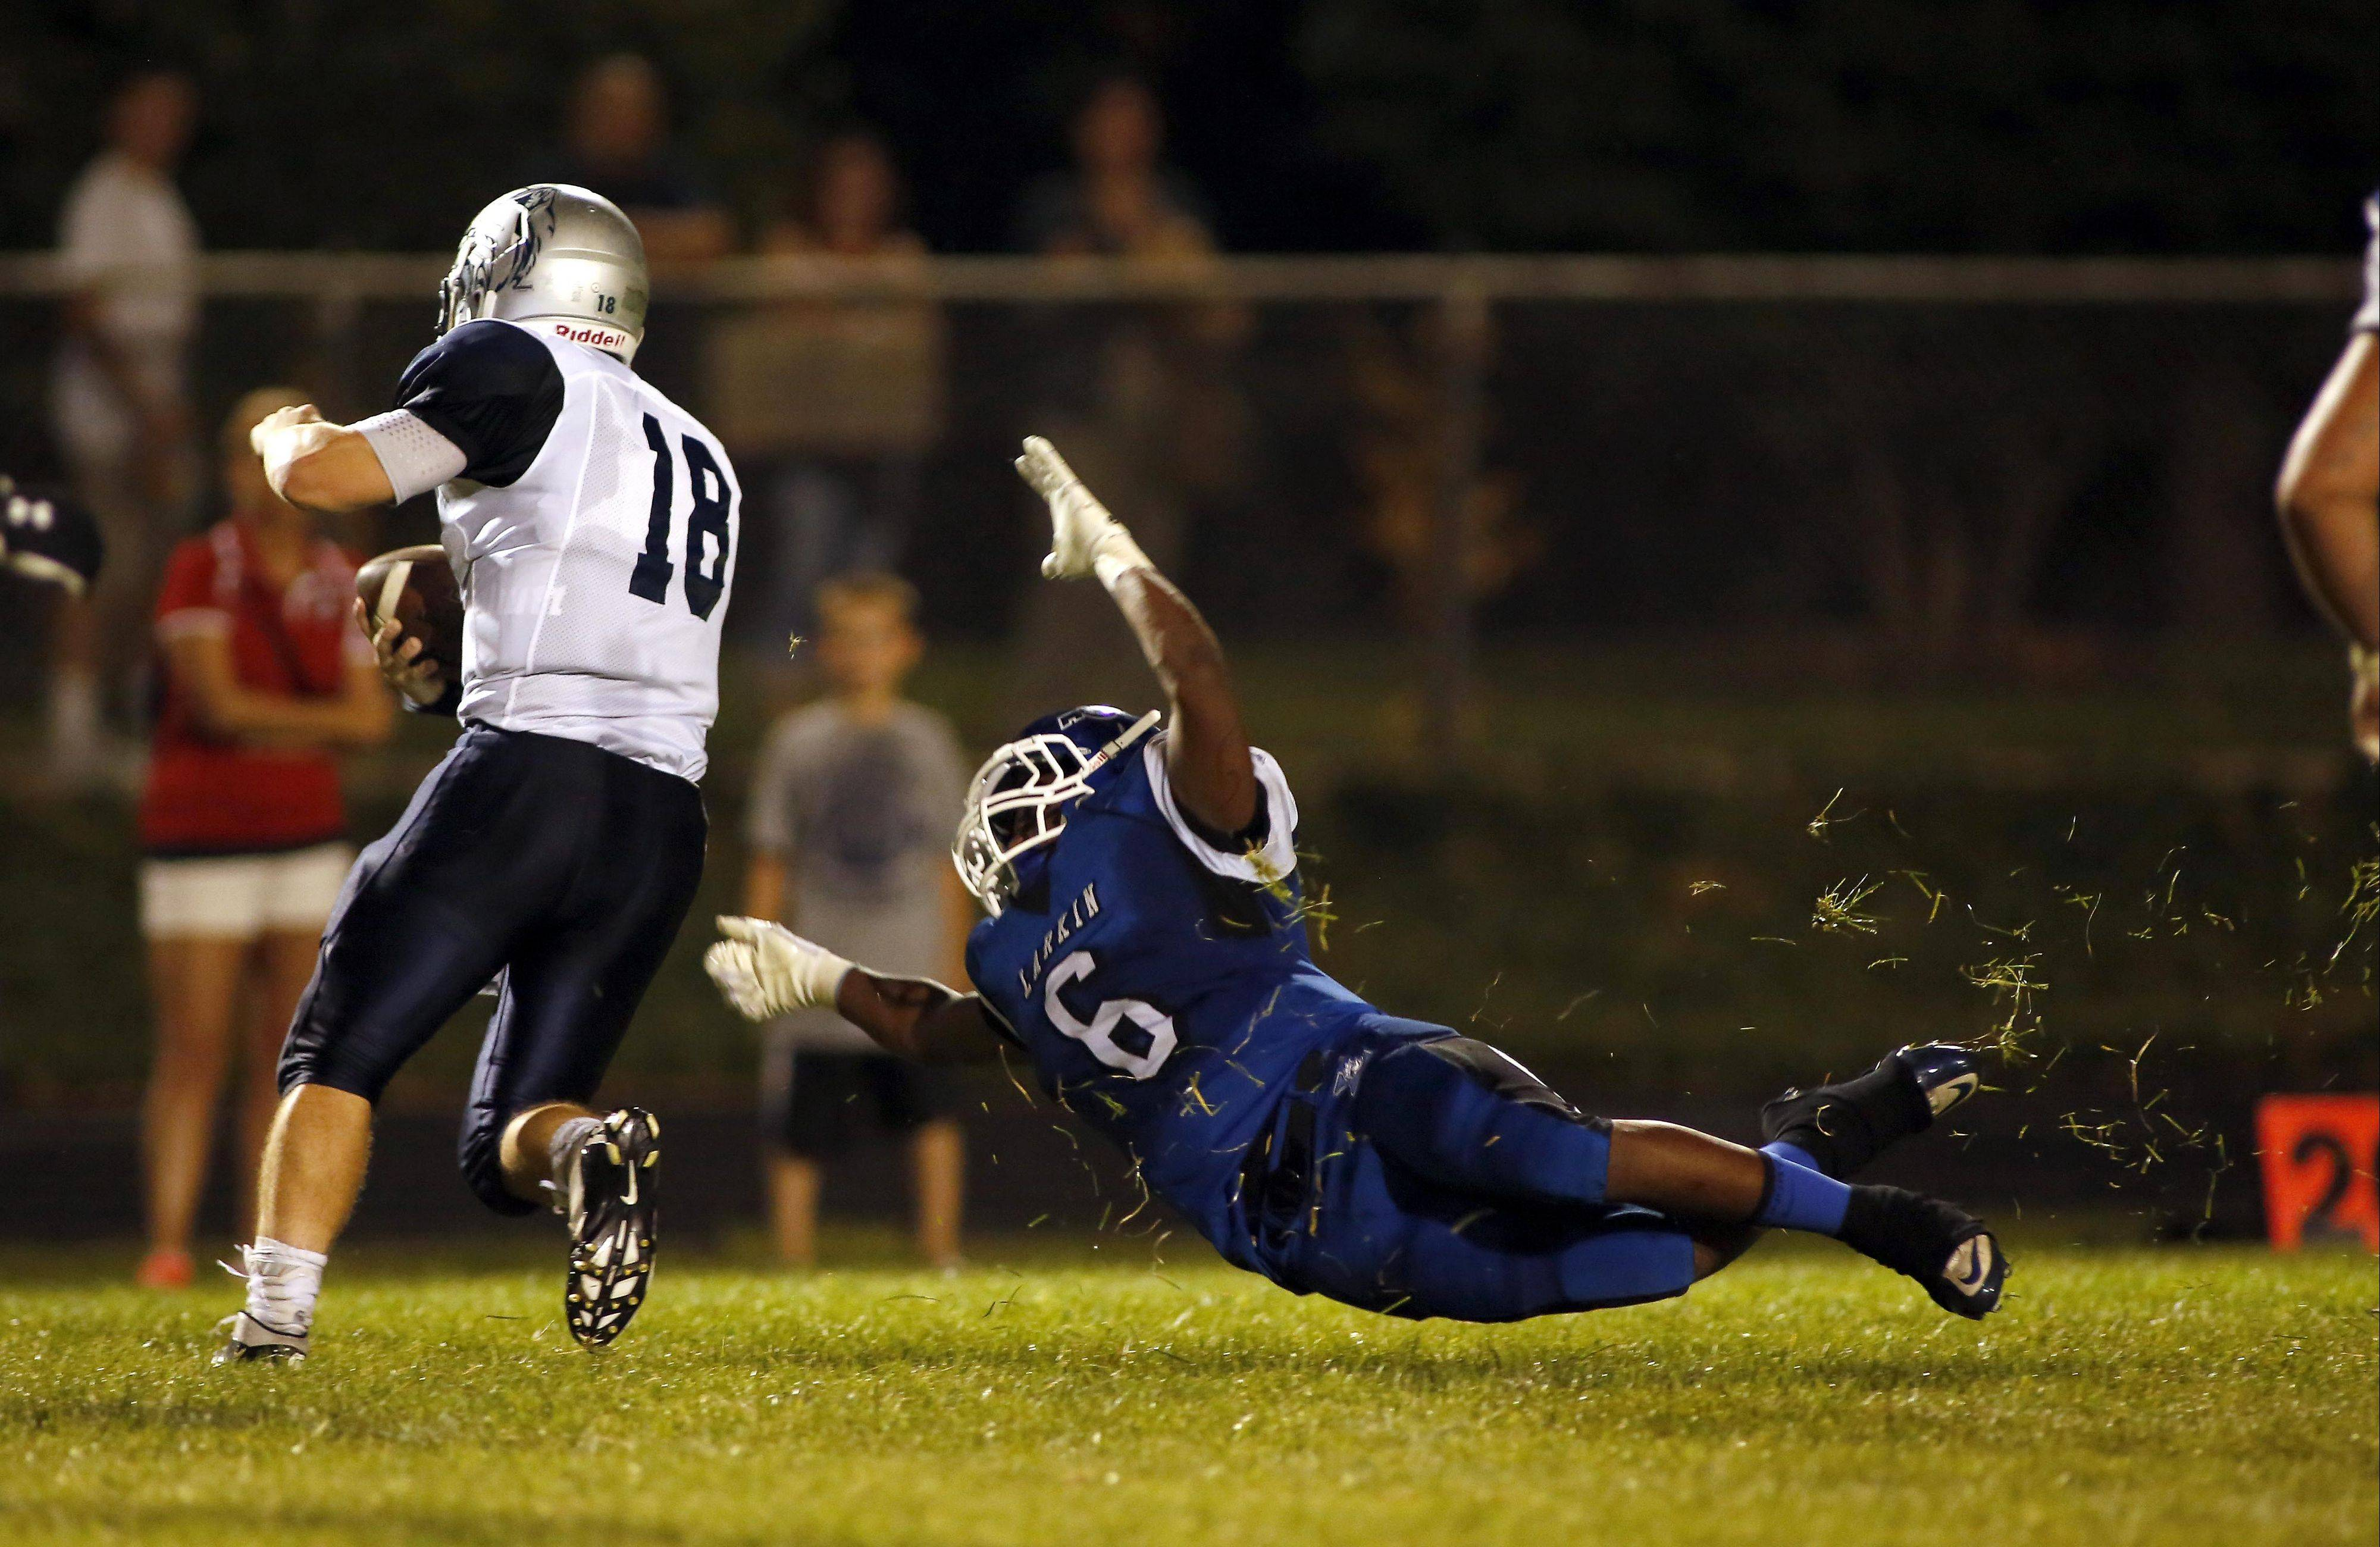 Larkin's Jeff Pruitt tries to bring down West Chicago's Jordan Lelito at Memorial Field in Elgin on Friday night.